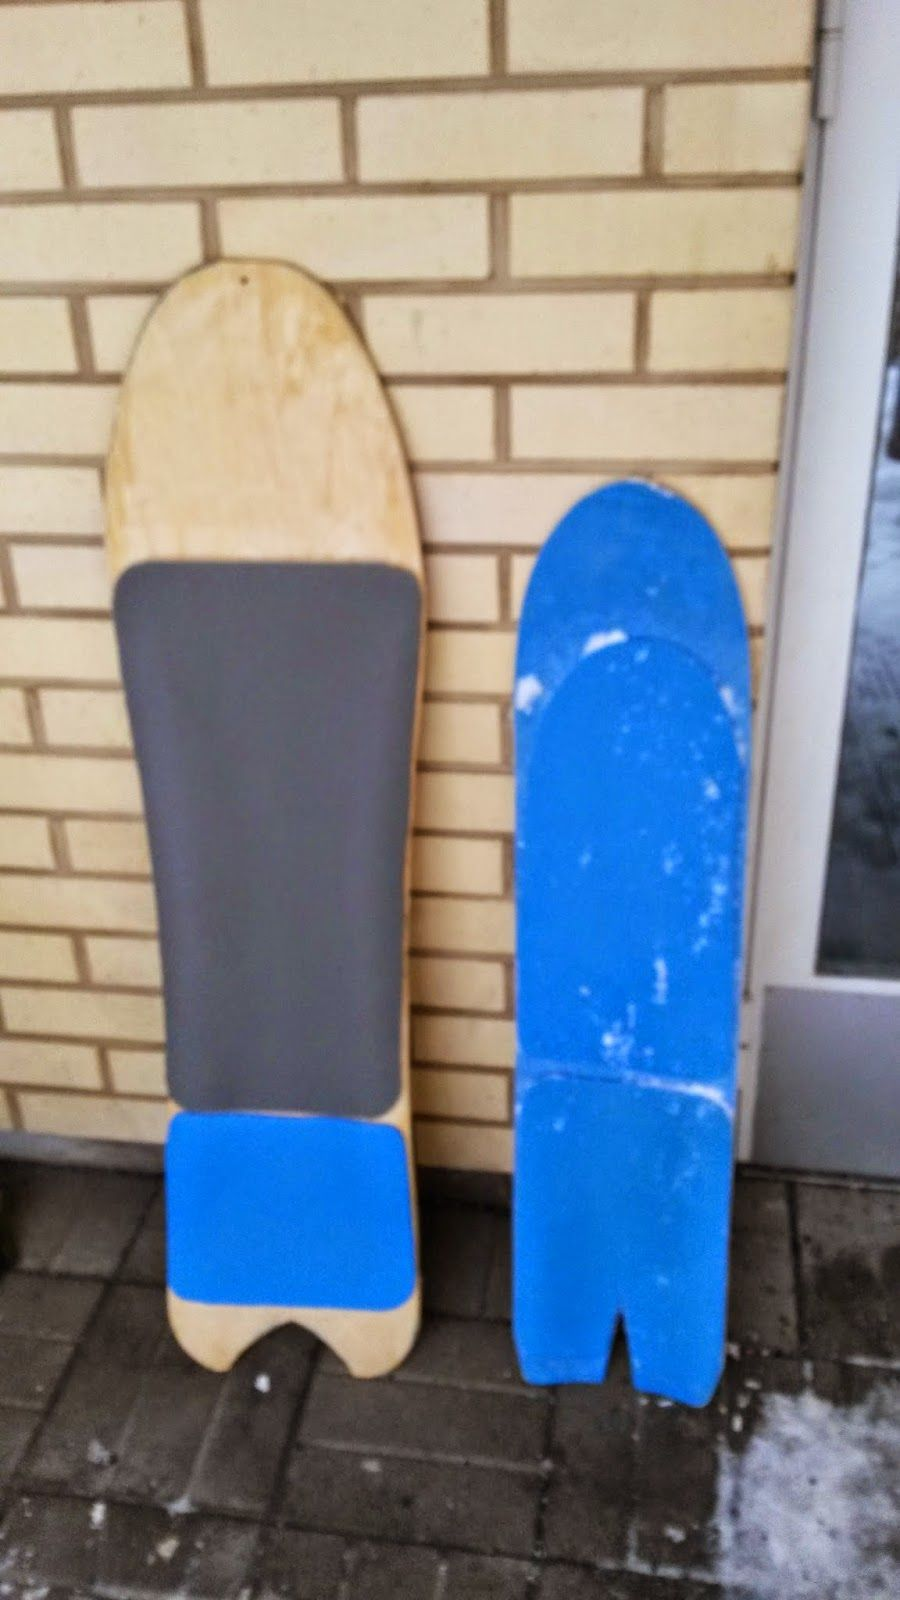 Powsurf and DIY, building your own powsurfer / noboard and